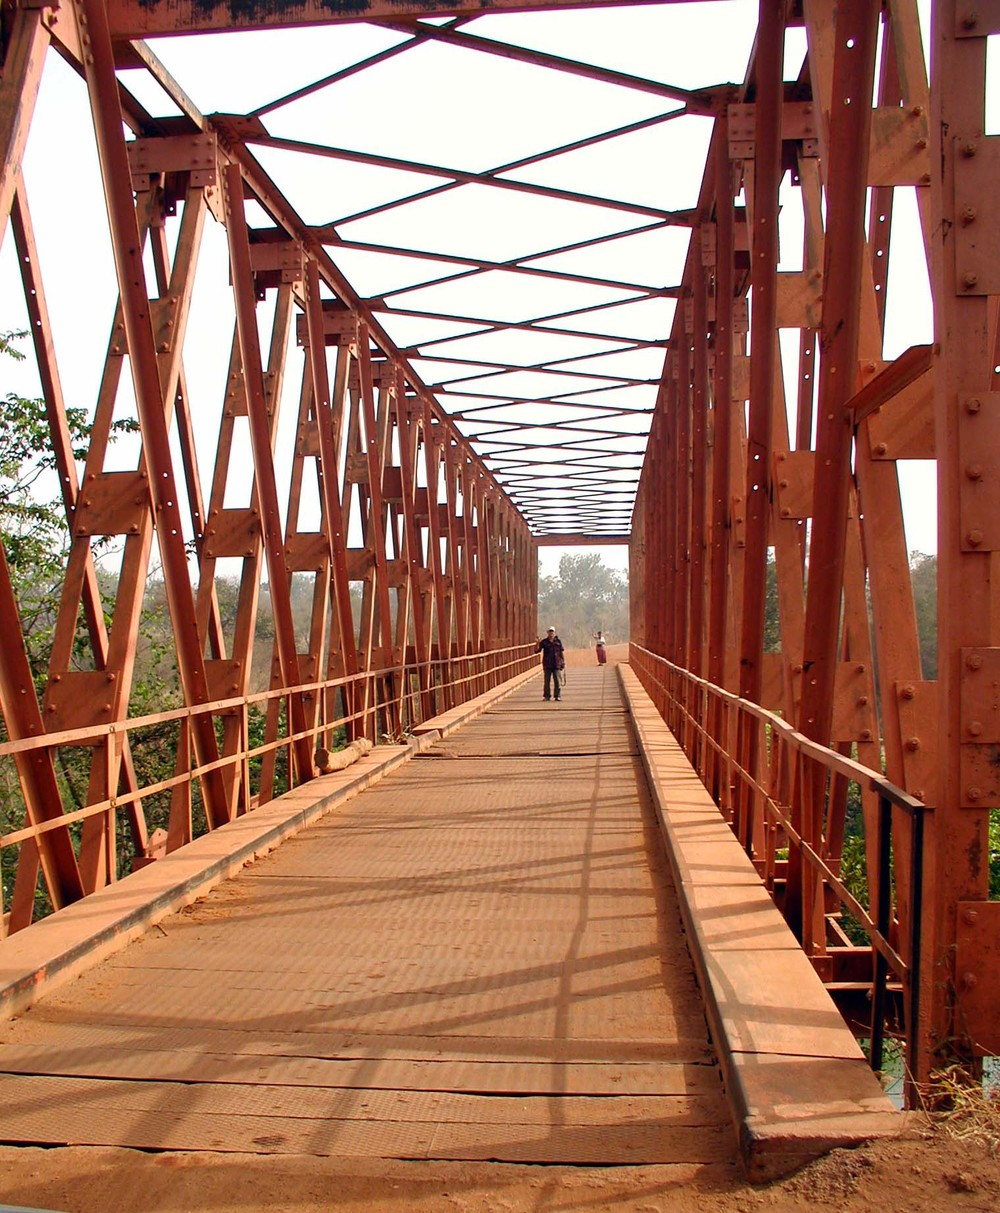 Bridges of Benin